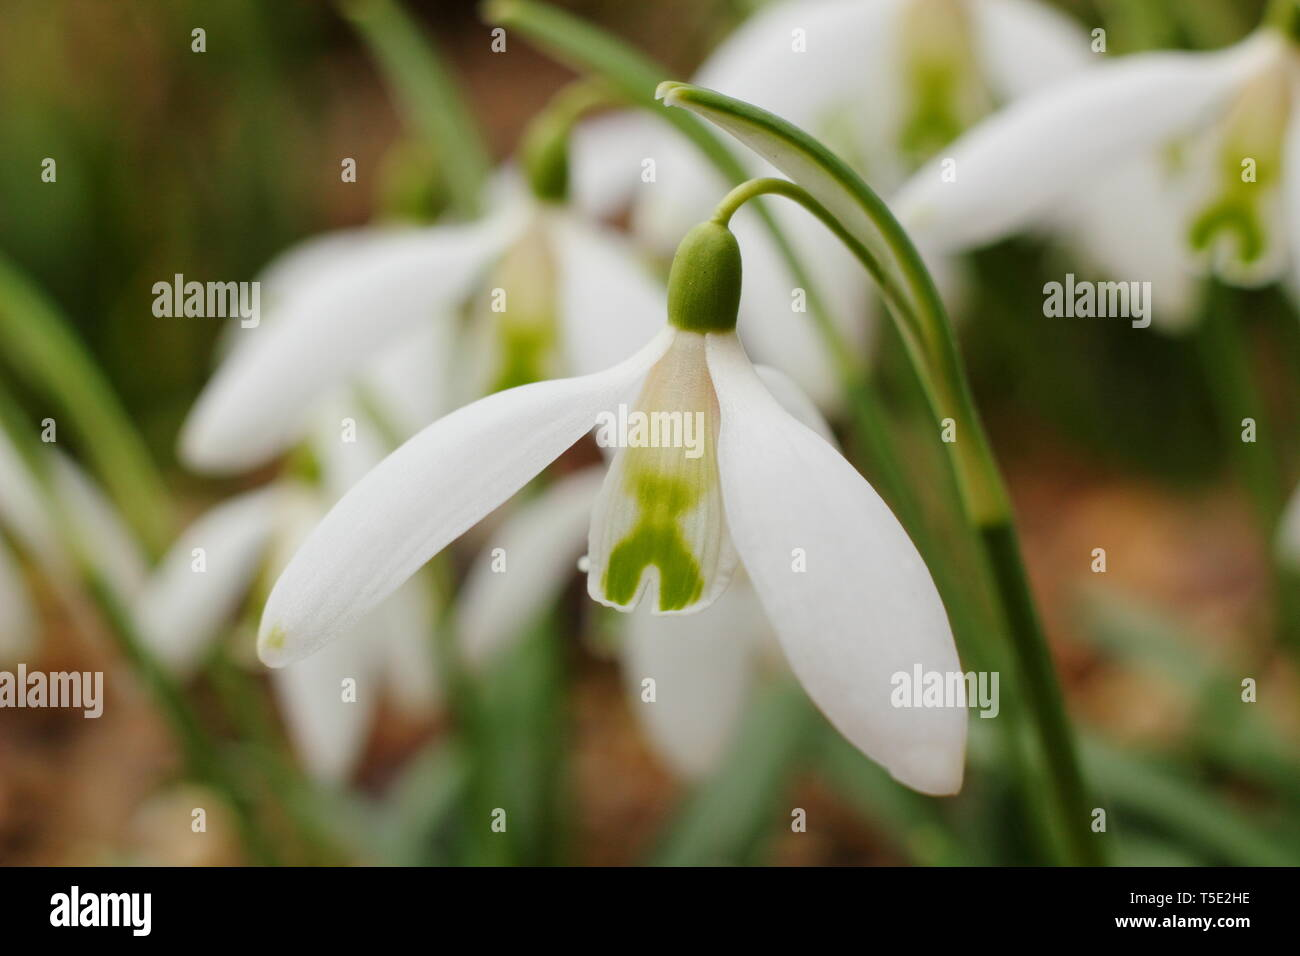 Galanthus 'Curly', a highly fragrant snowdrop displaying characteristic green 'cross' on inner segments - February, UK - Stock Image